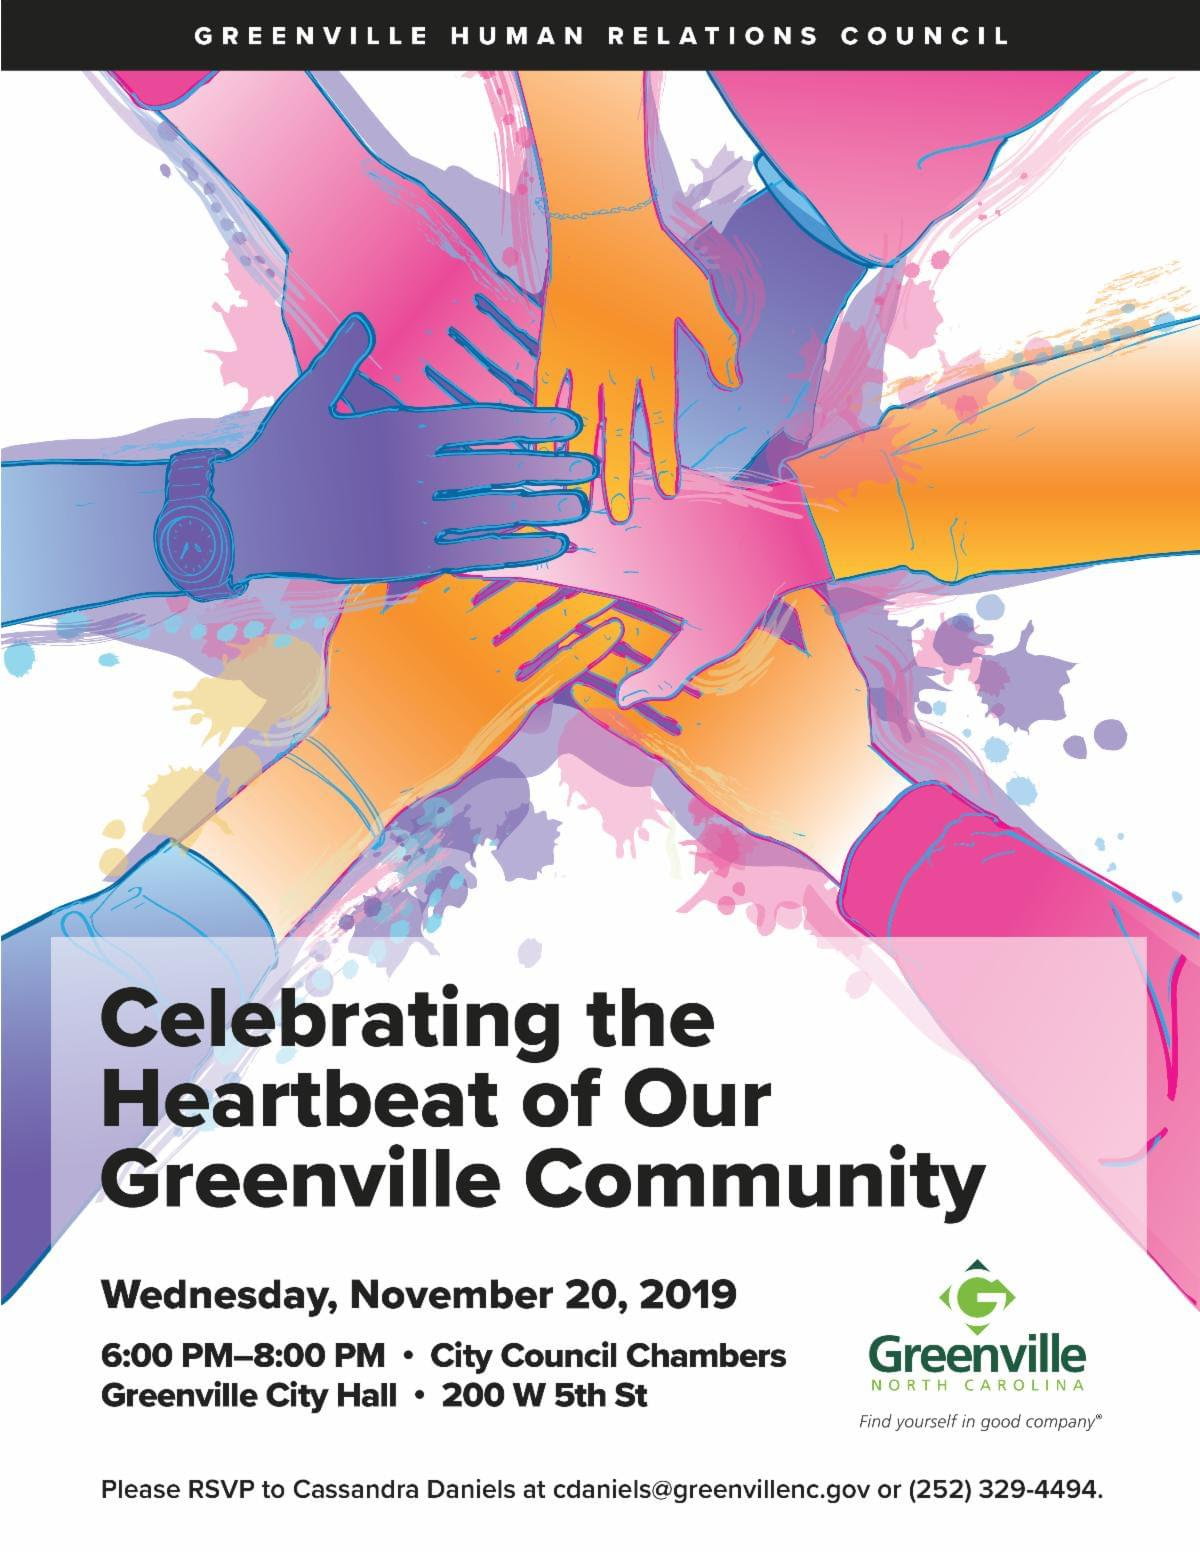 CELEBRATING THE HEARTBEAT OF OUR GREENVILLE COMMUNITY